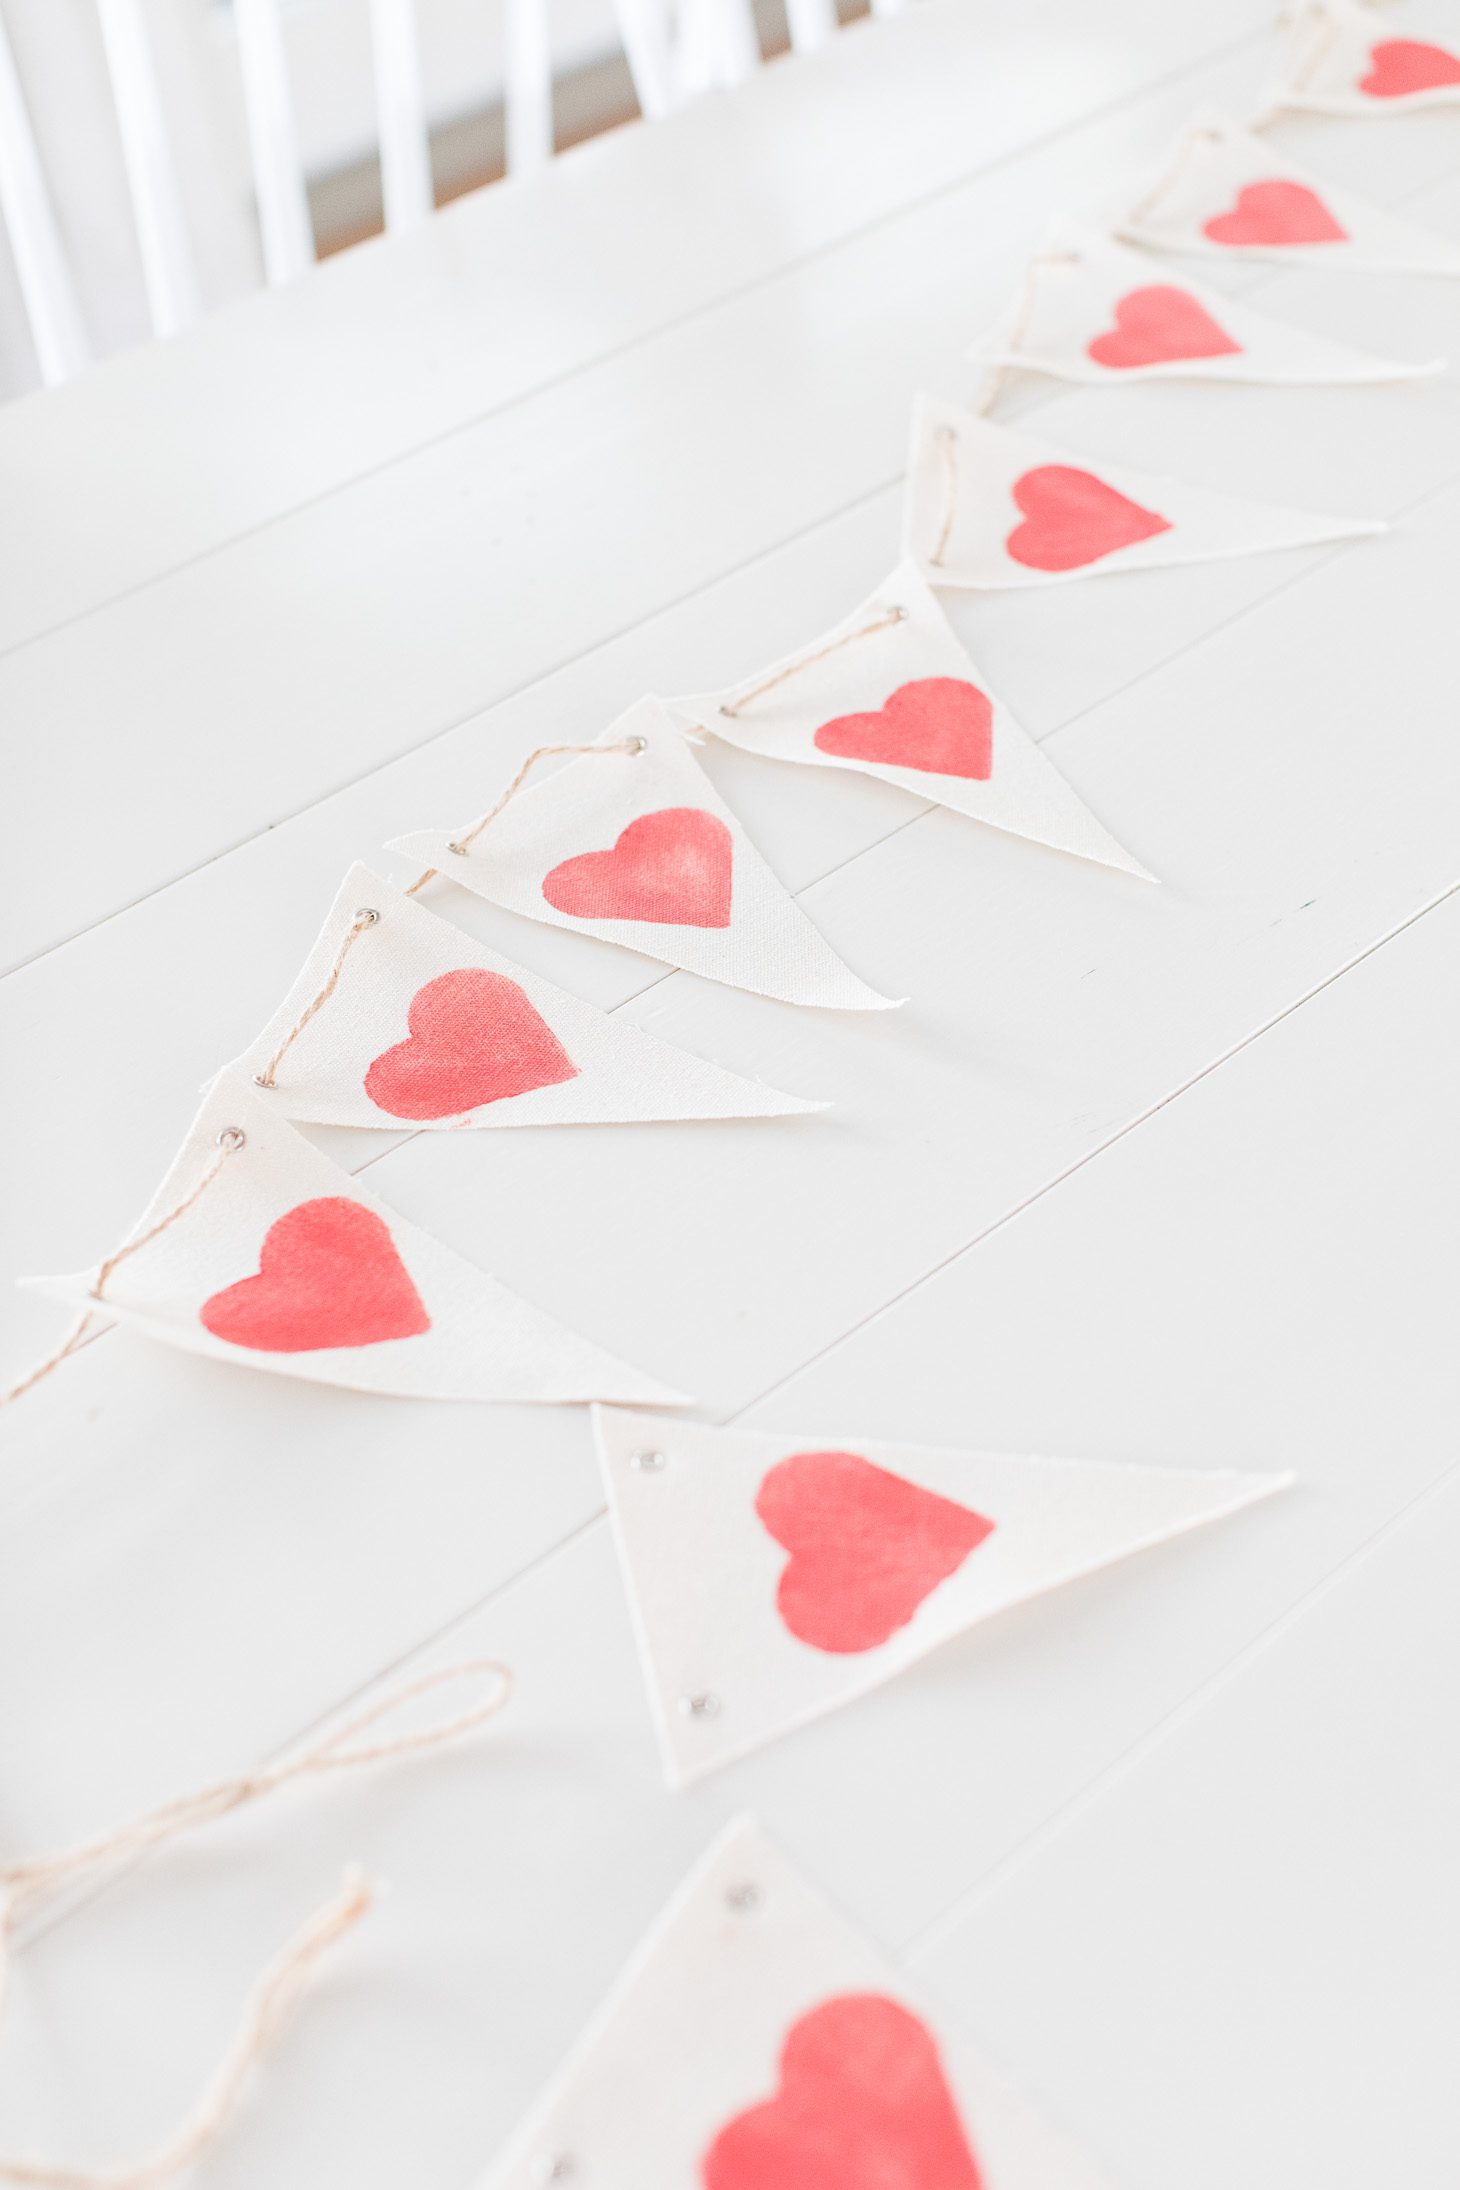 Jillian Harris 5 Simple Ways to Decorate for Valentine's Day